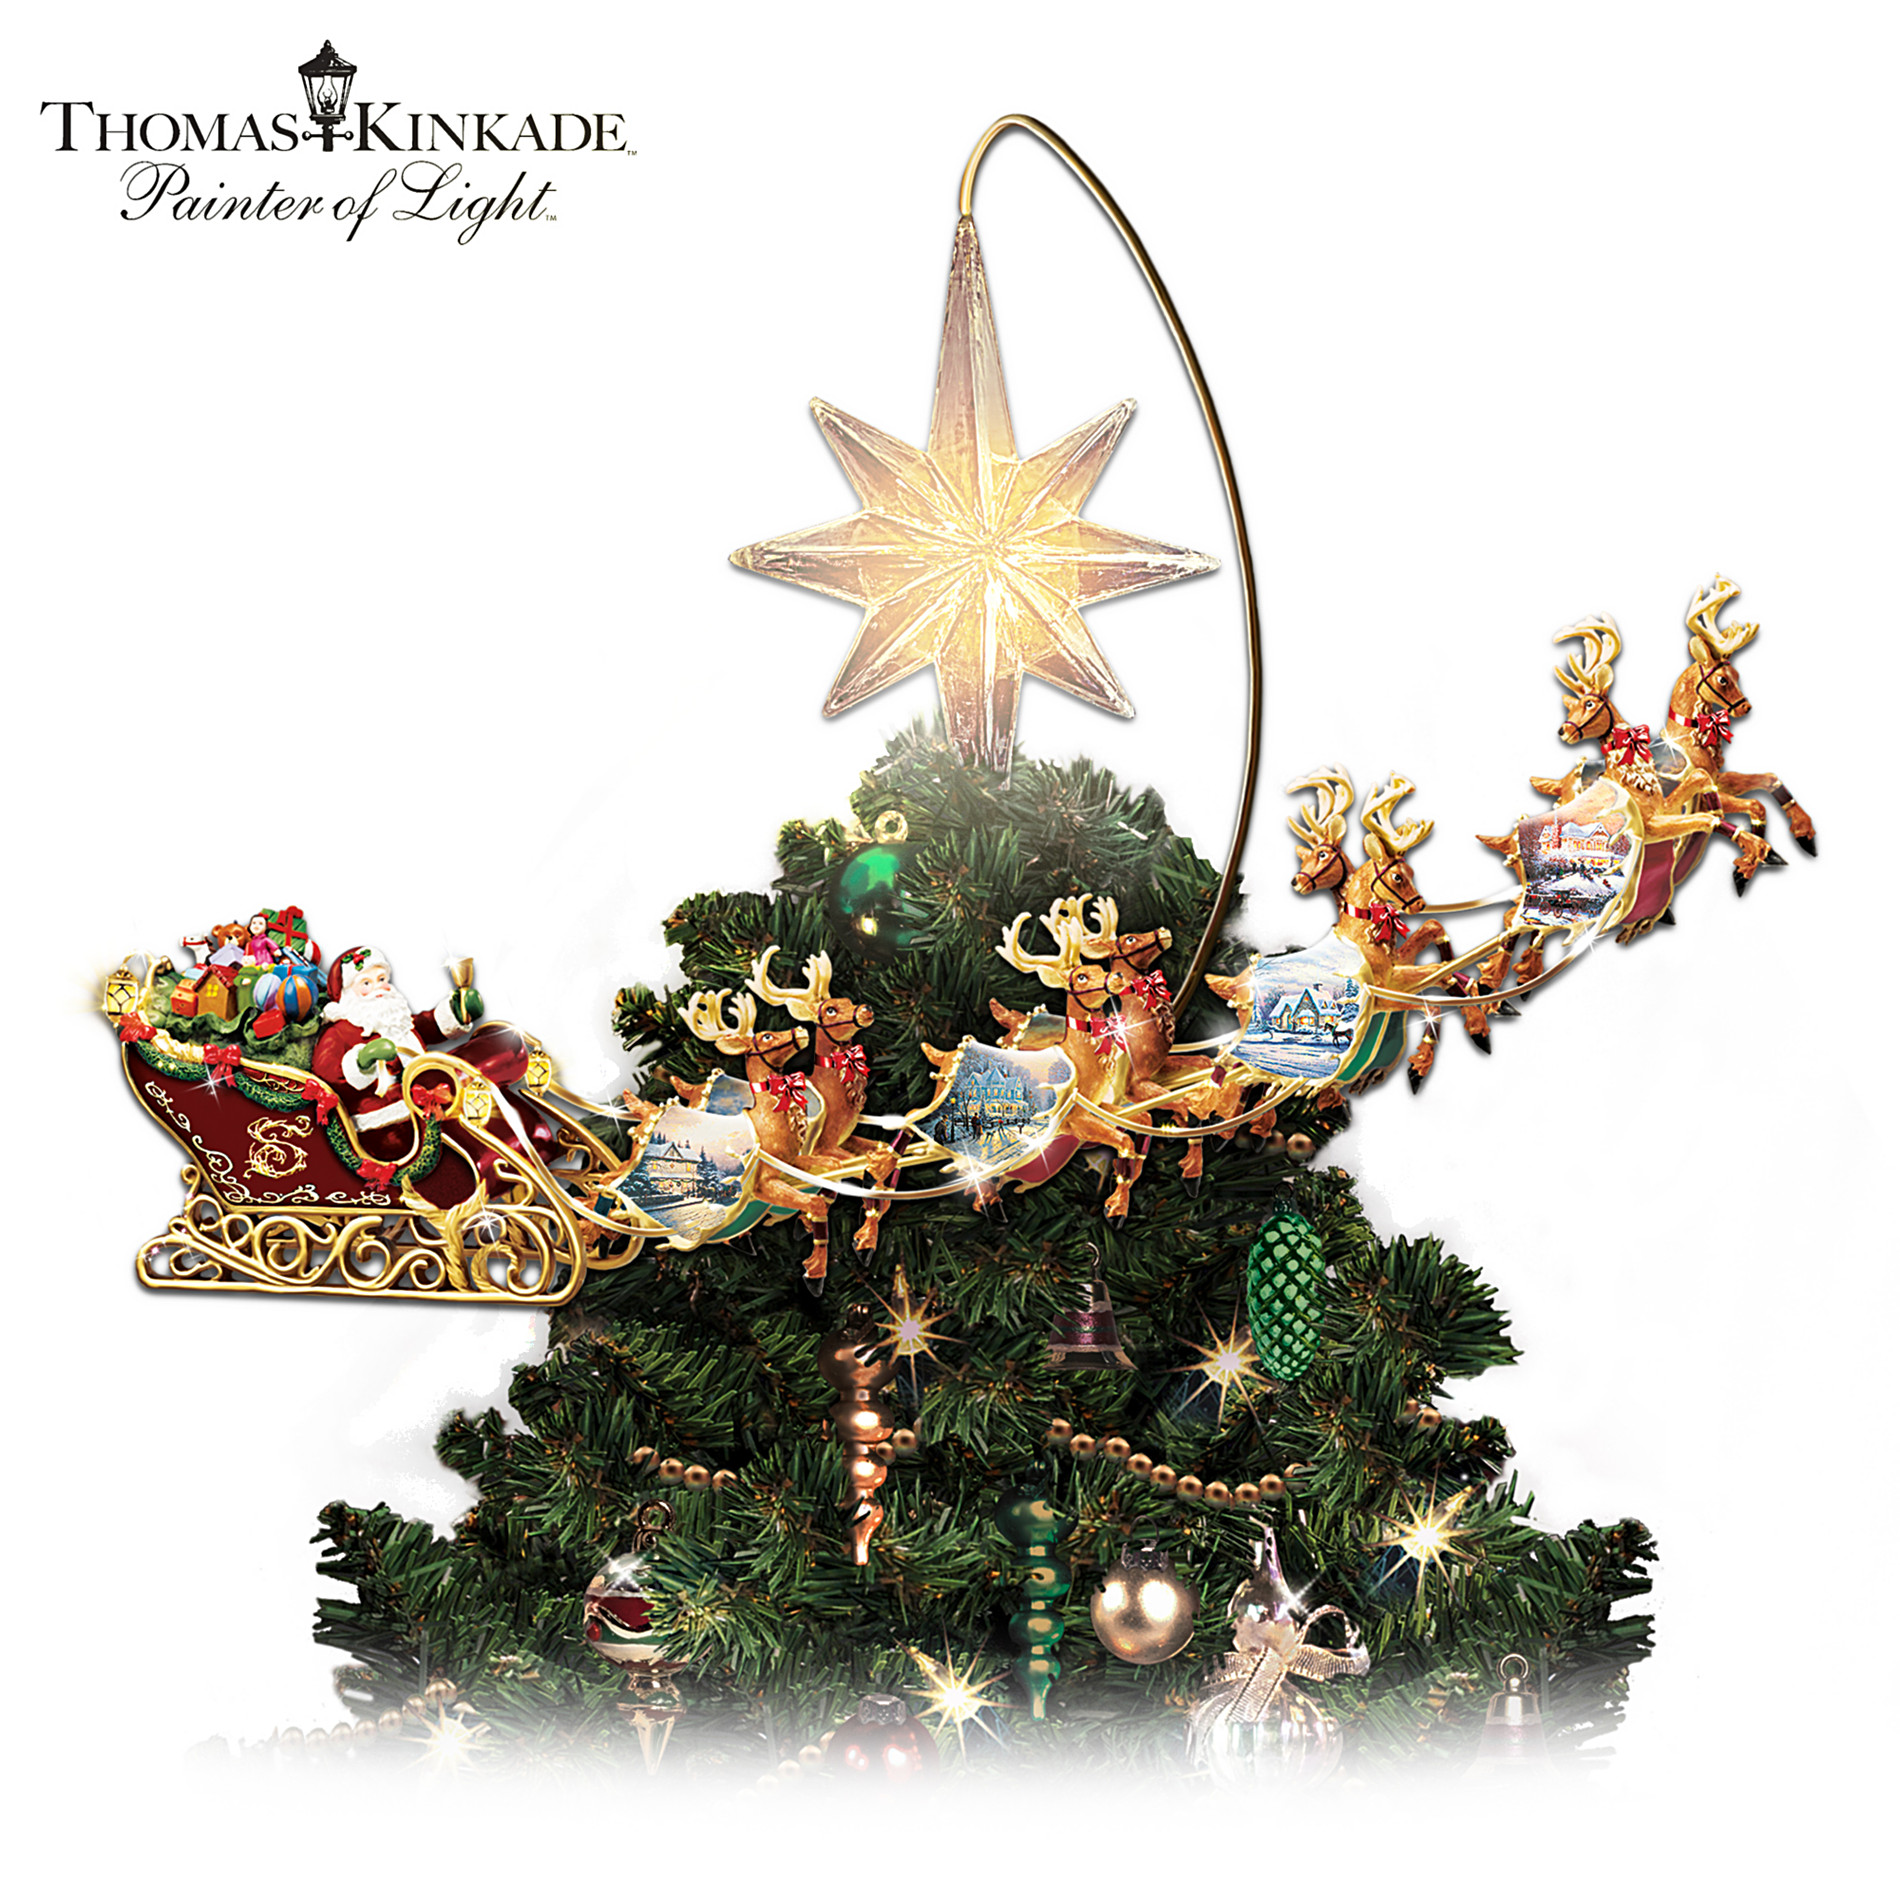 The Bradford Editions Thomas Kinkade Holidays in Motion Rotating Illuminated Tree Topper: Animated Christmas Decor at Sears.com